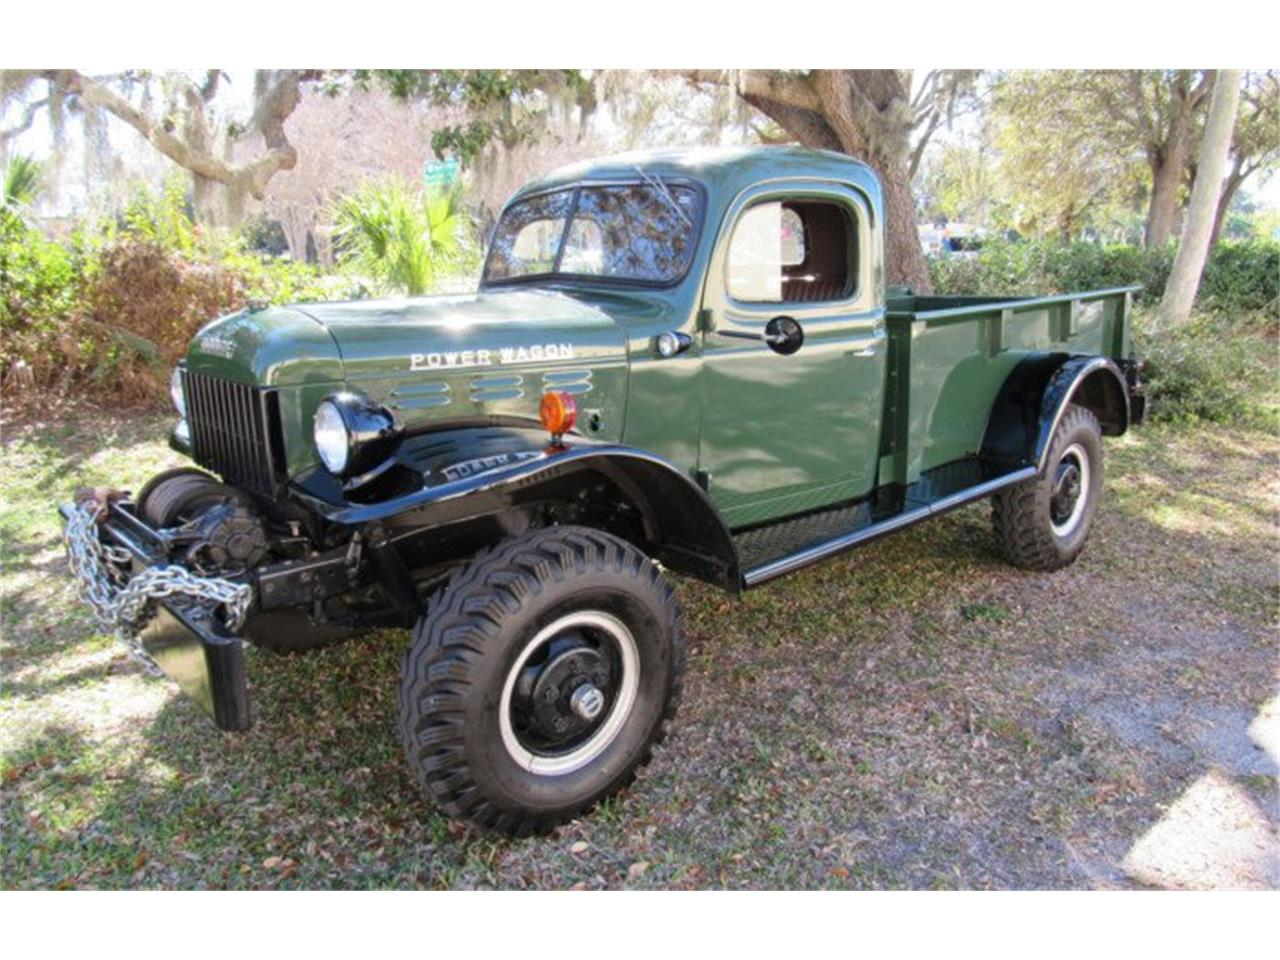 Large Picture of '49 Power Wagon Auction Vehicle Offered by Premier Auction Group - PH13